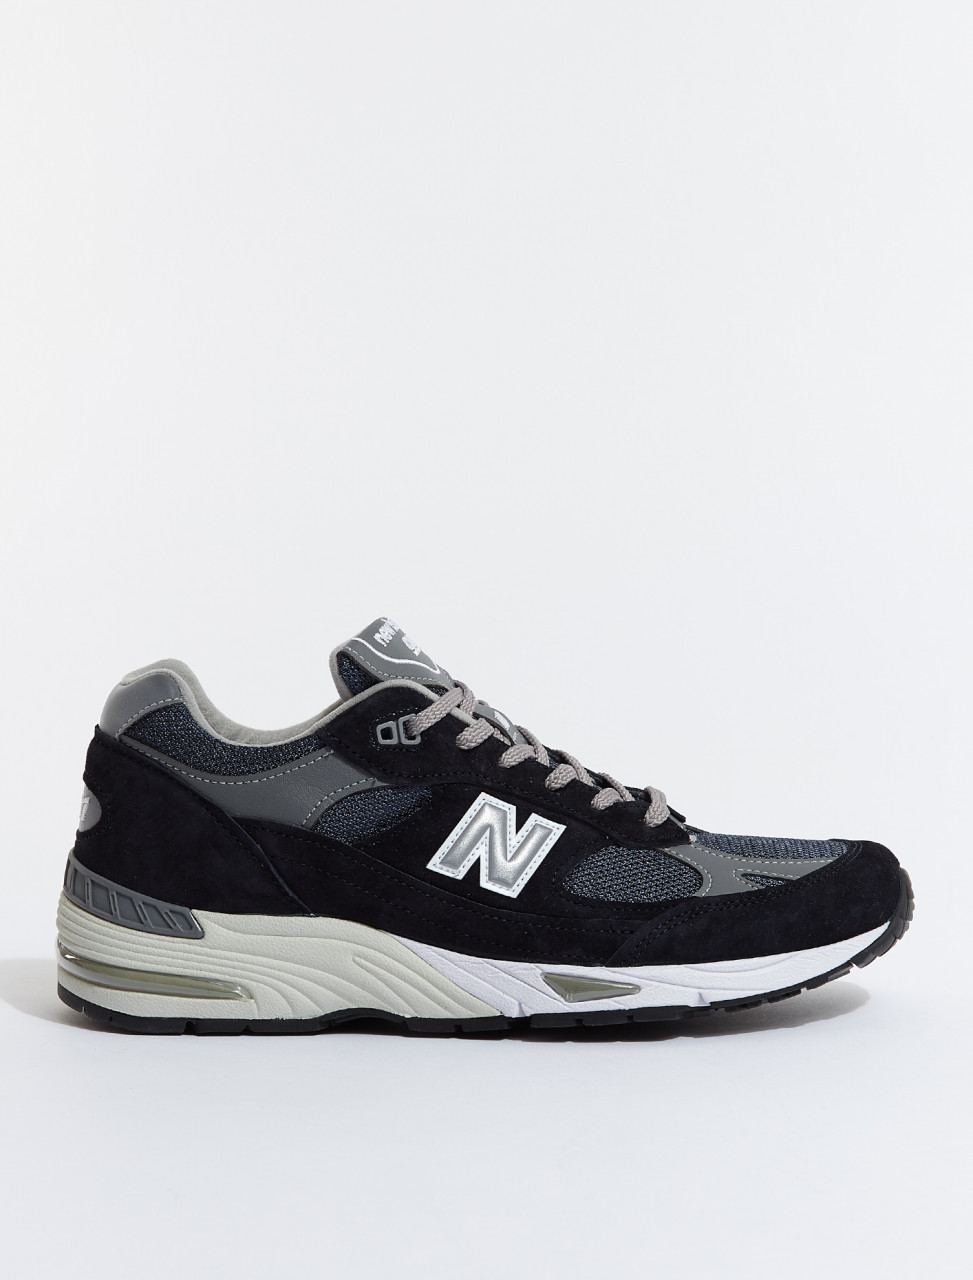 527631-60-10 NEW BALANCE M991 in Navy Blue